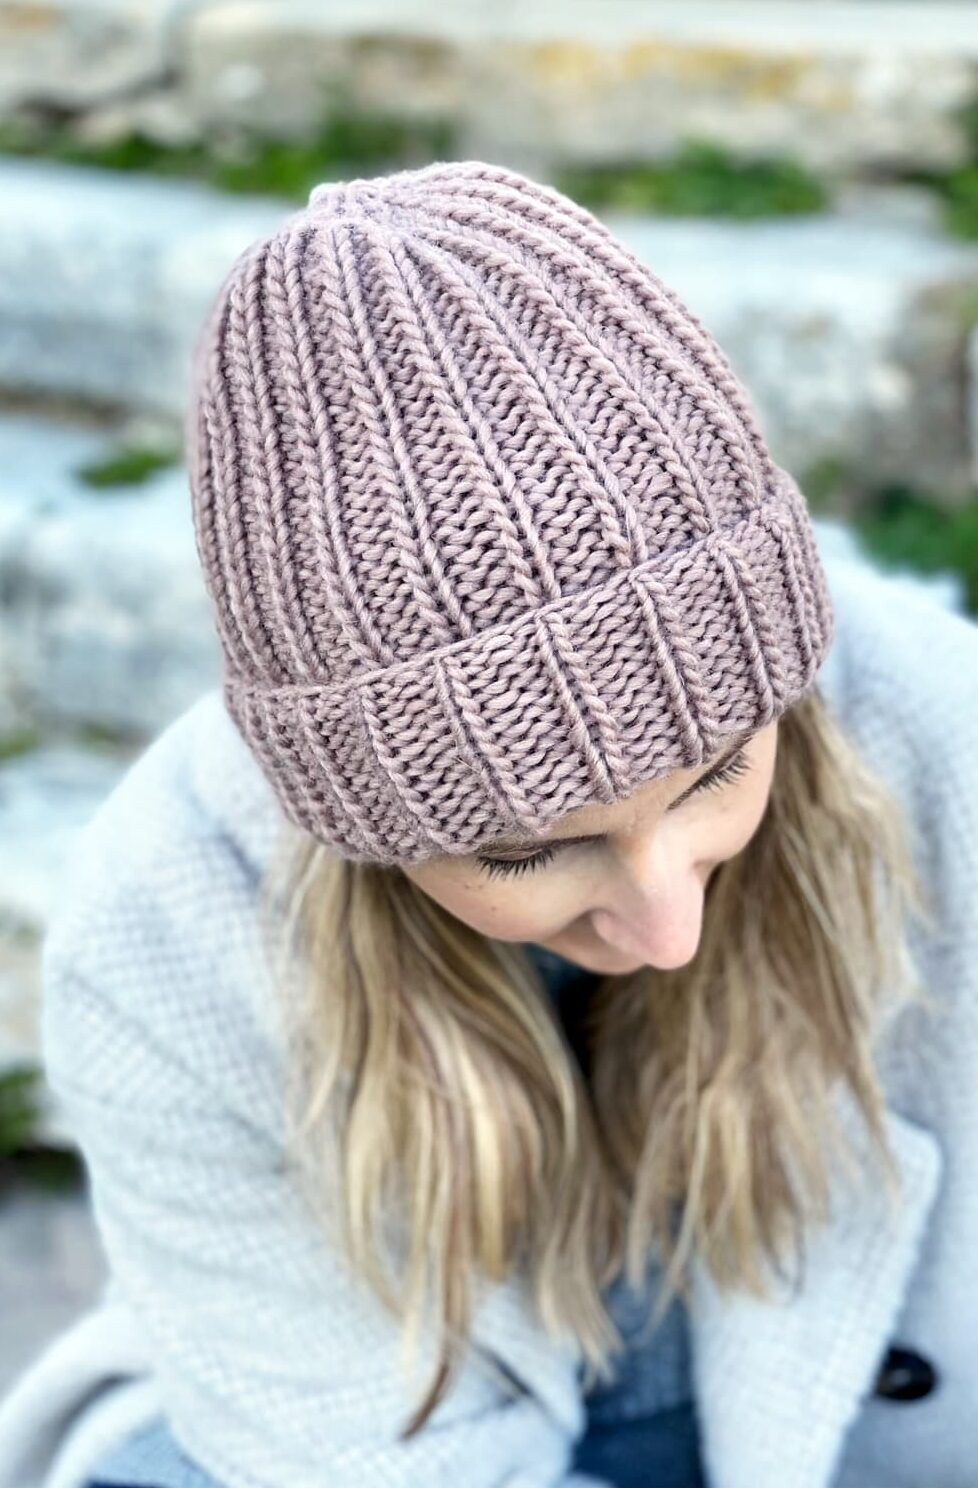 How To Knit A Hat With Circular Needles Knit Beanie Pattern Knitting Patterns Free Hats Beanie Knitting Patterns Free